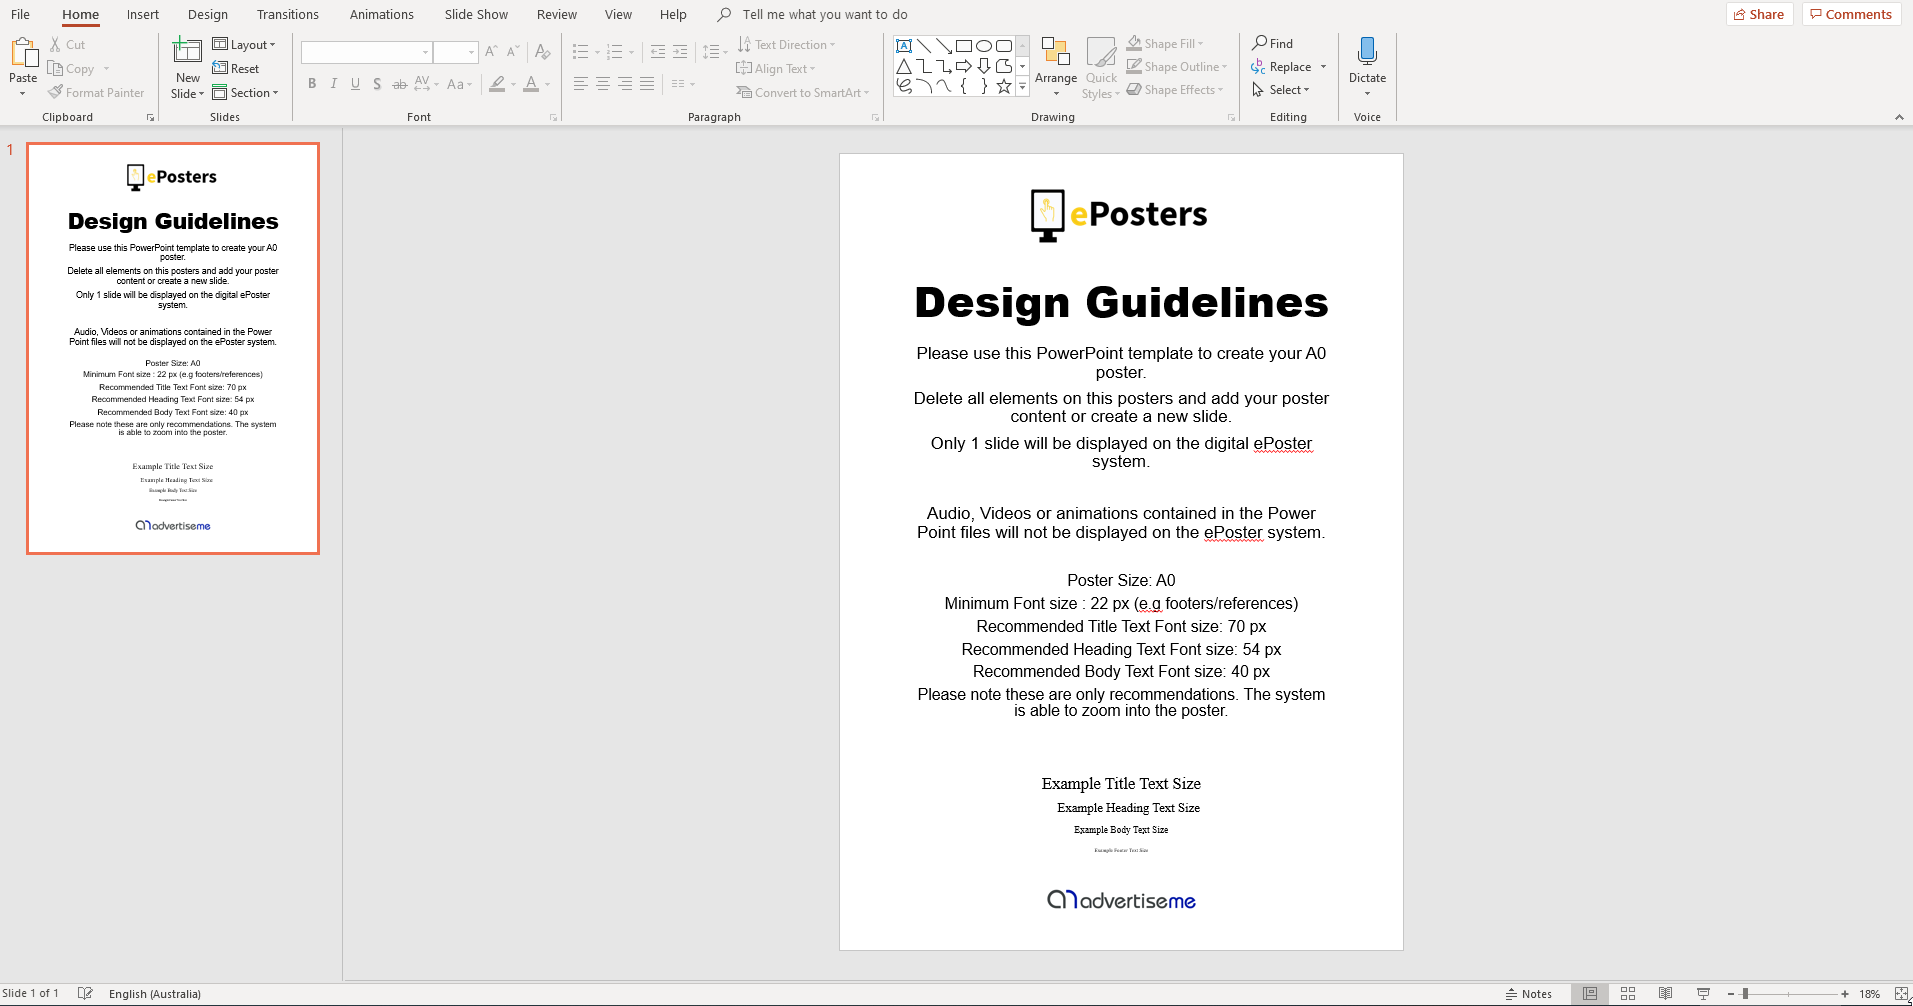 EPOSTER SUBMISSION GUIDELINES